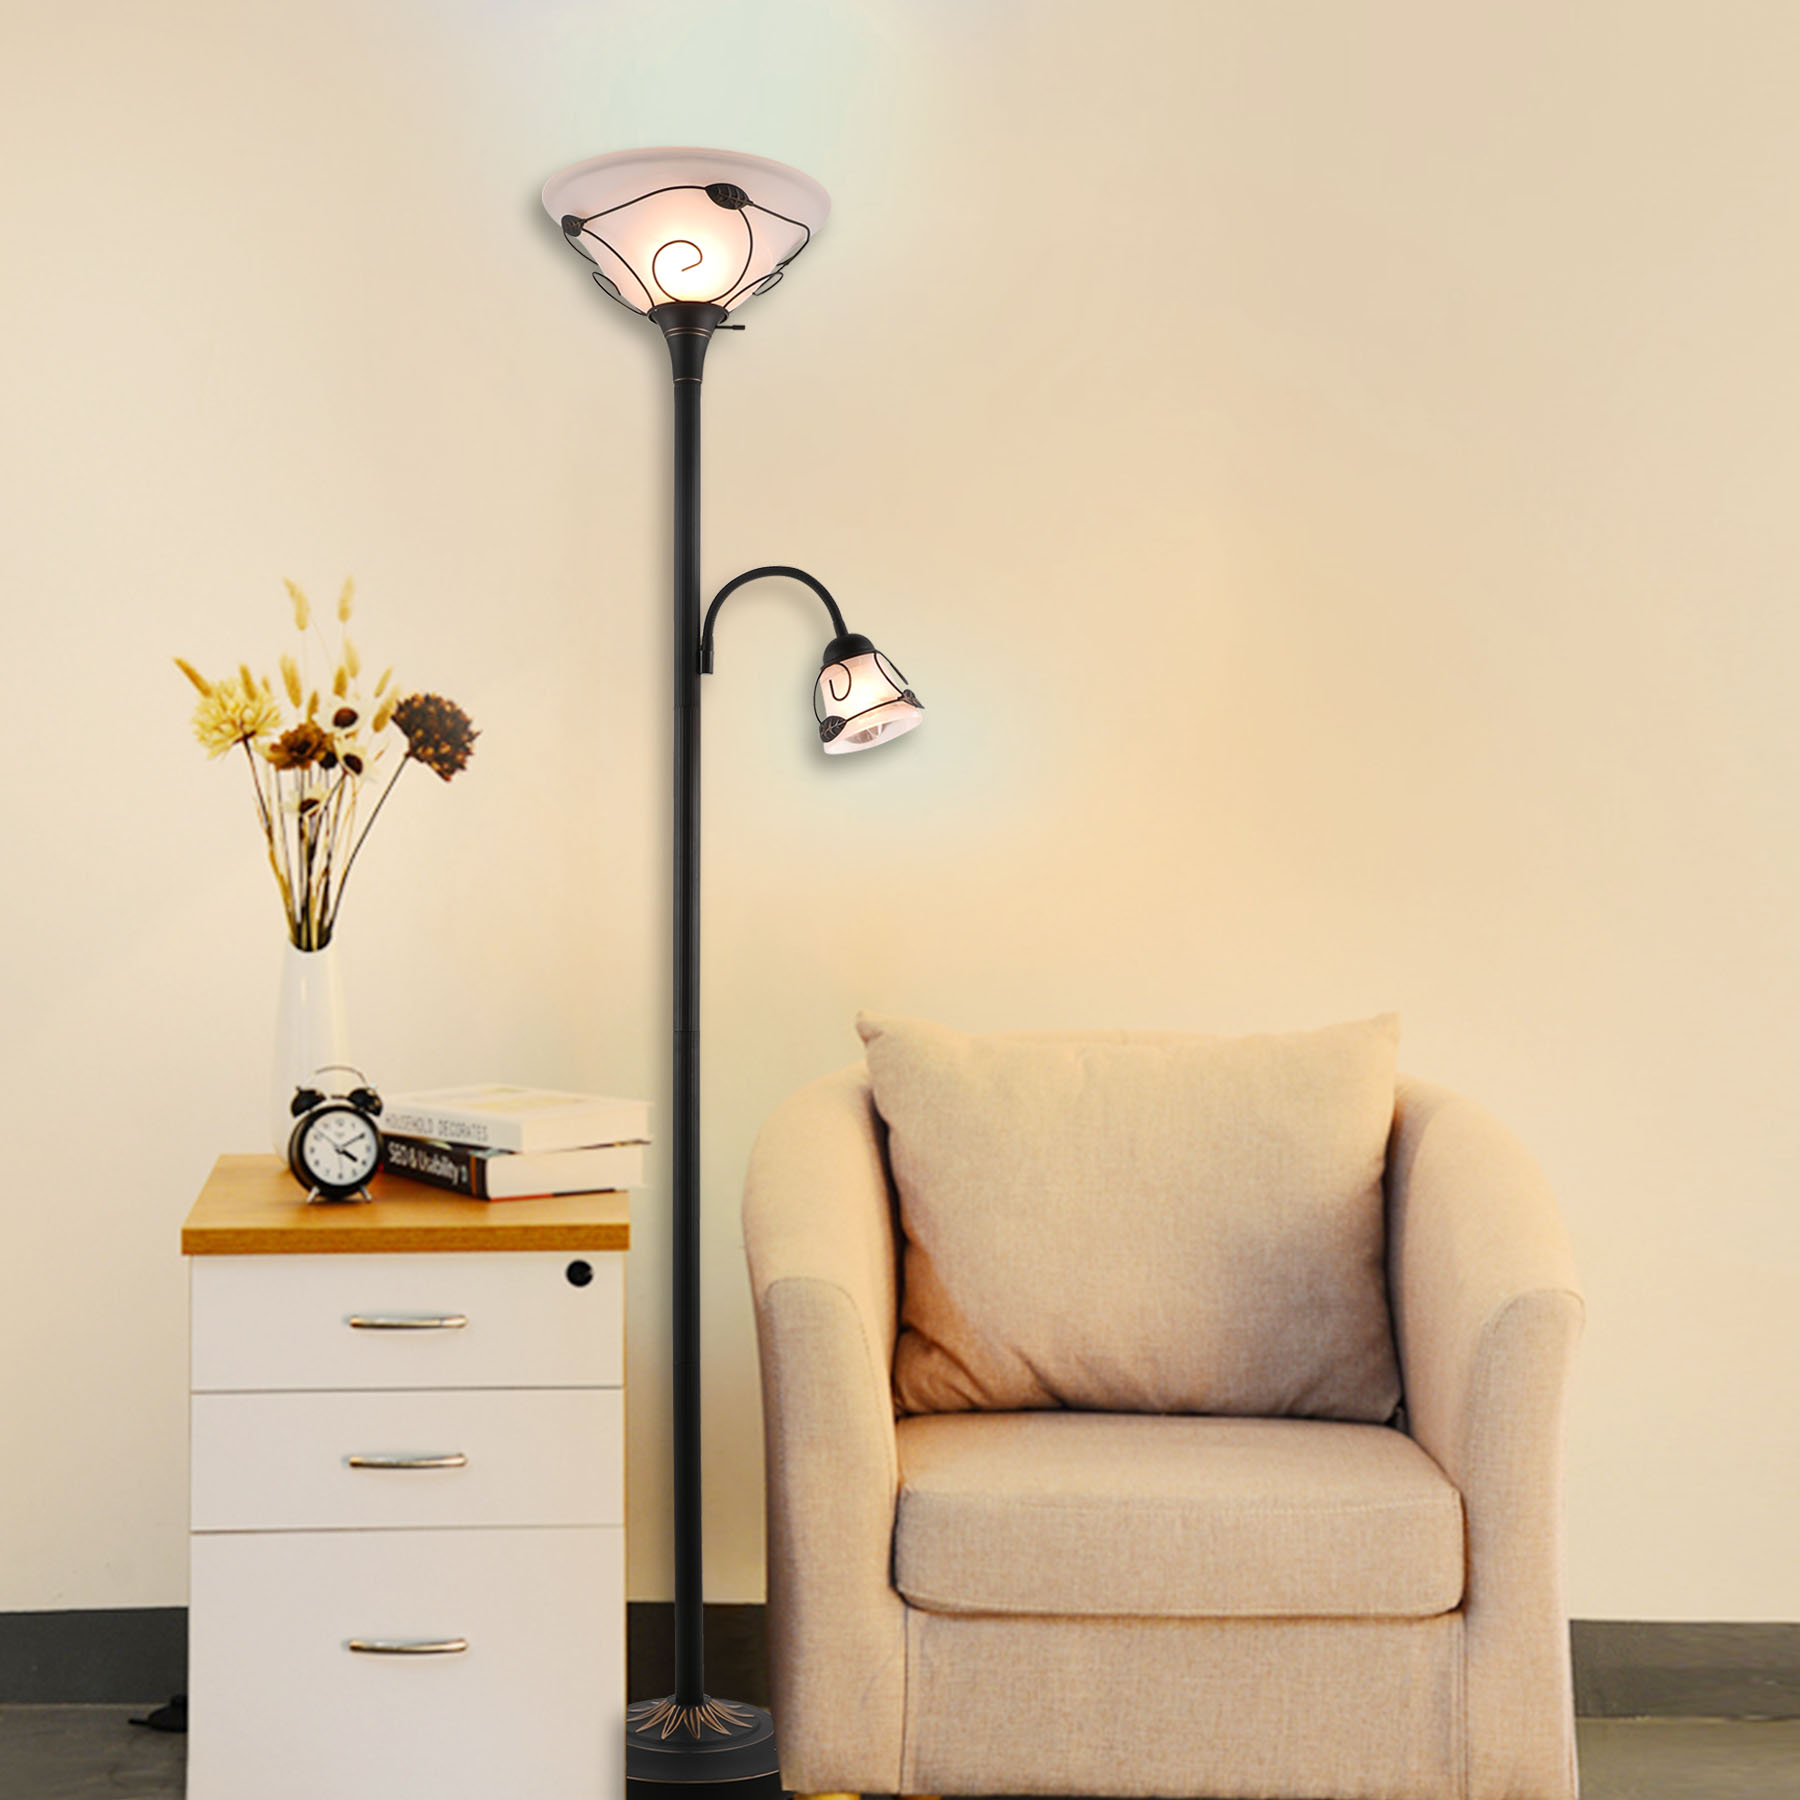 Torchiere Floor Lamp w/ Side Reading Lamp Dark-bronze Painted Finish ETL Listed